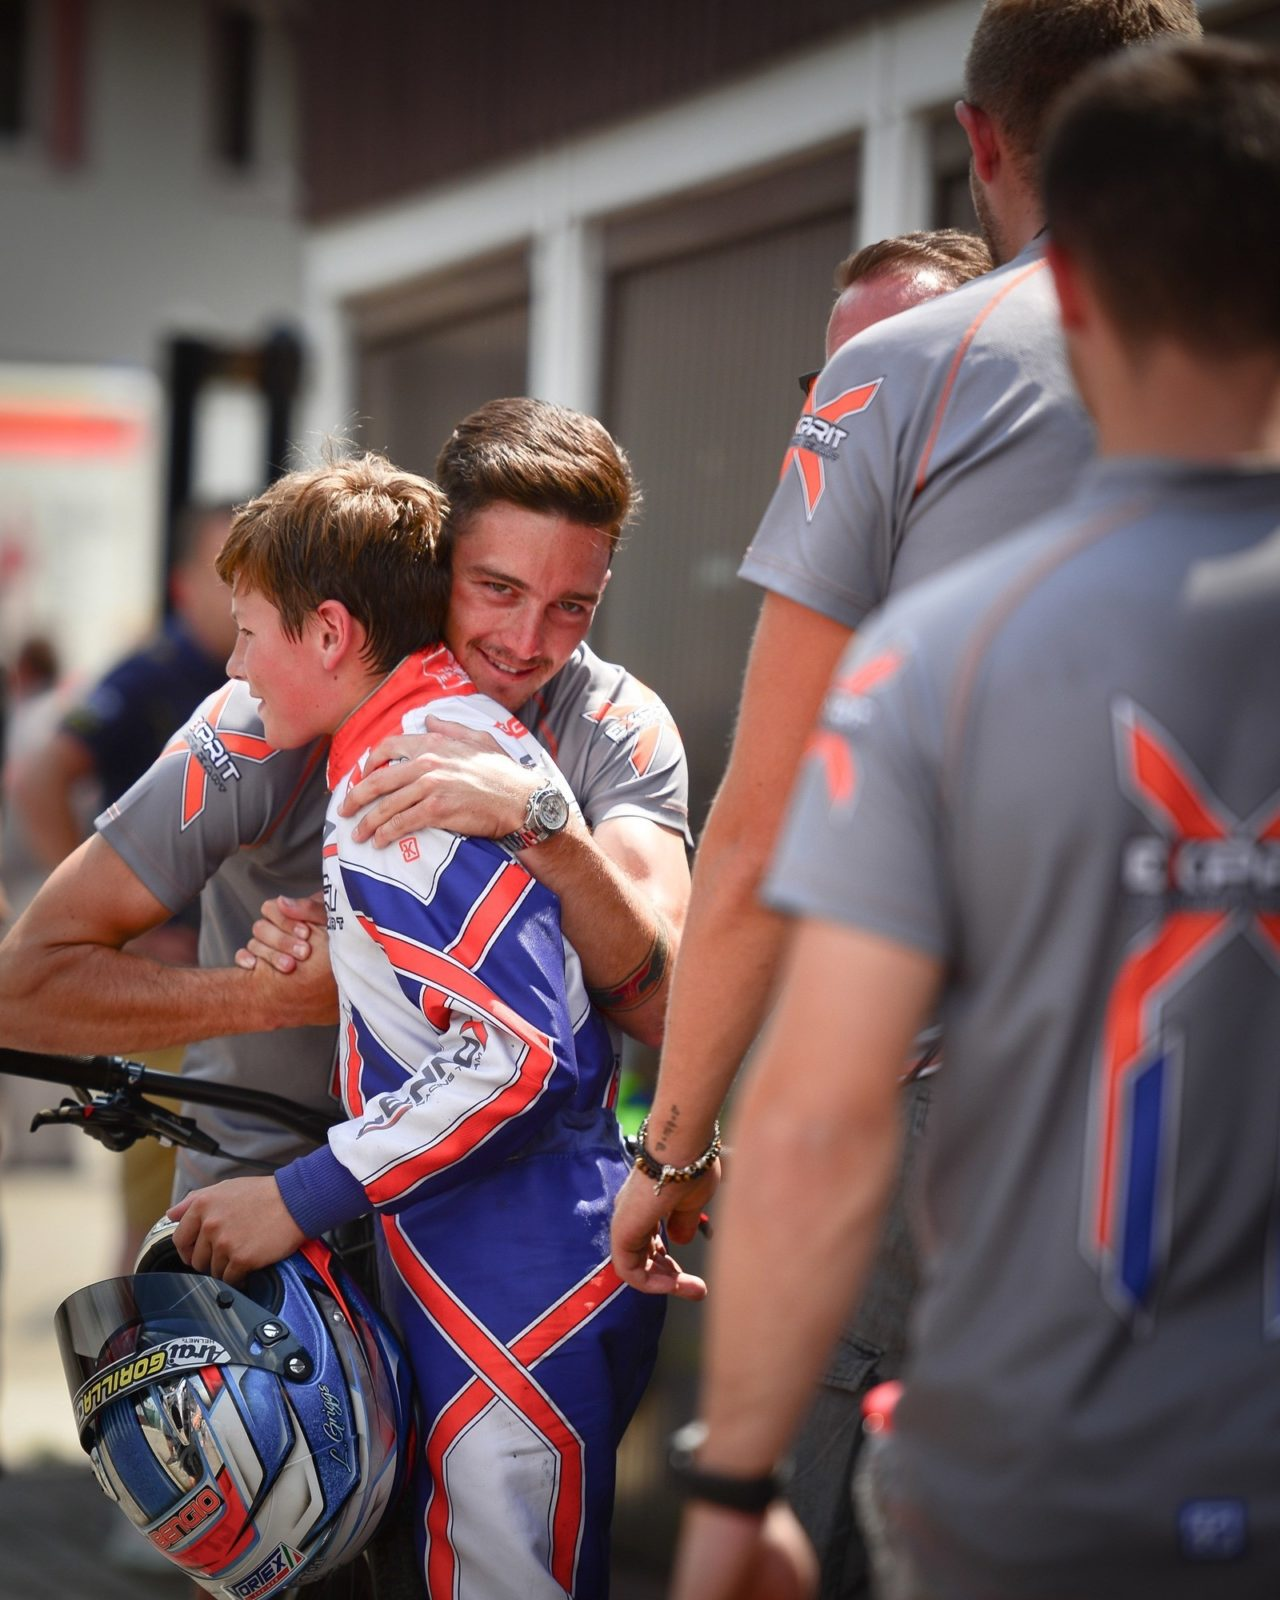 Jordon Lennox hugs his team driver